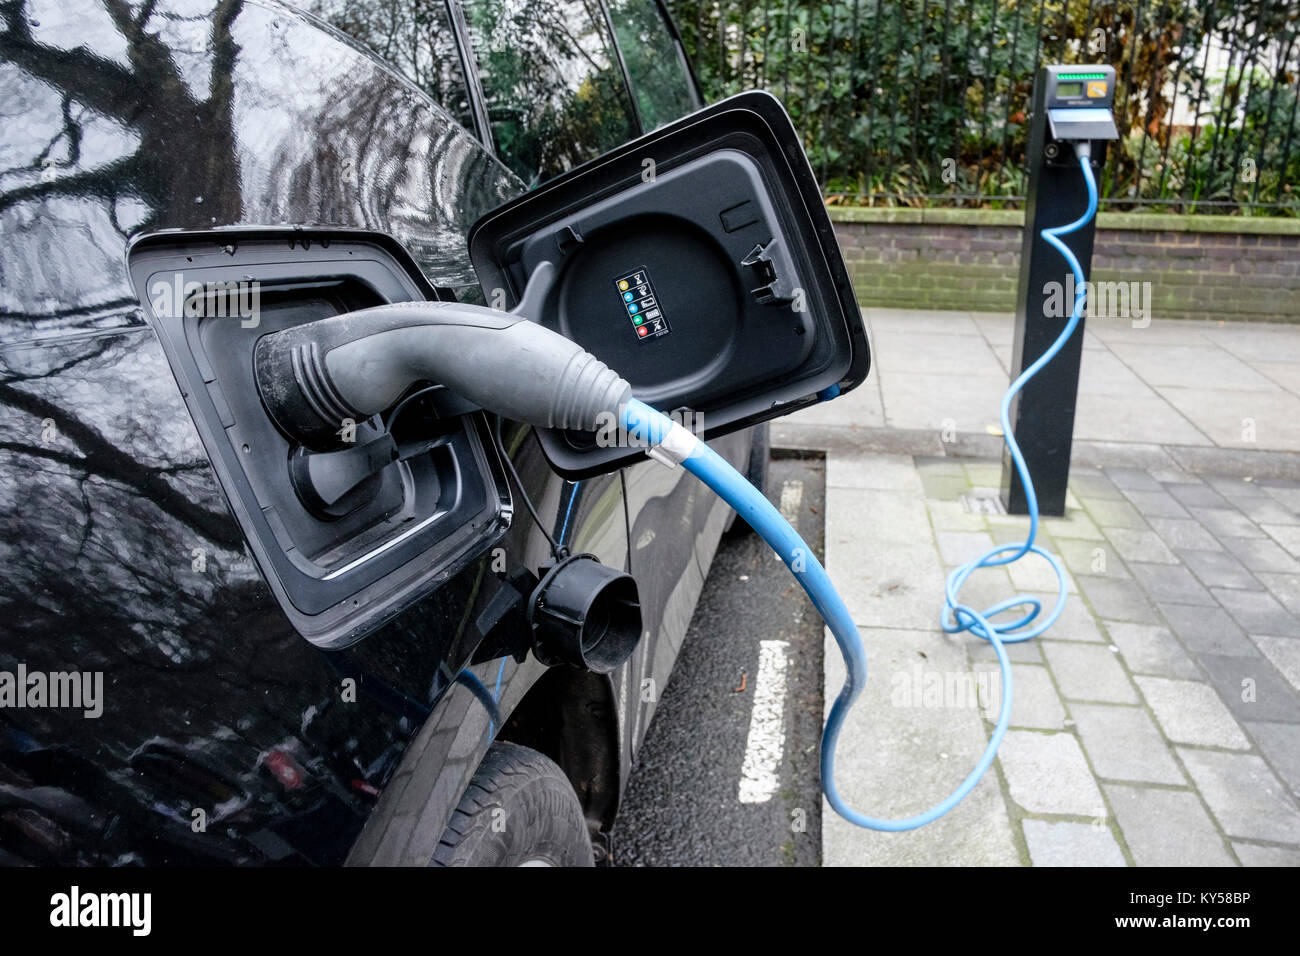 Electric car at public charging point in central London, UK - Stock Image